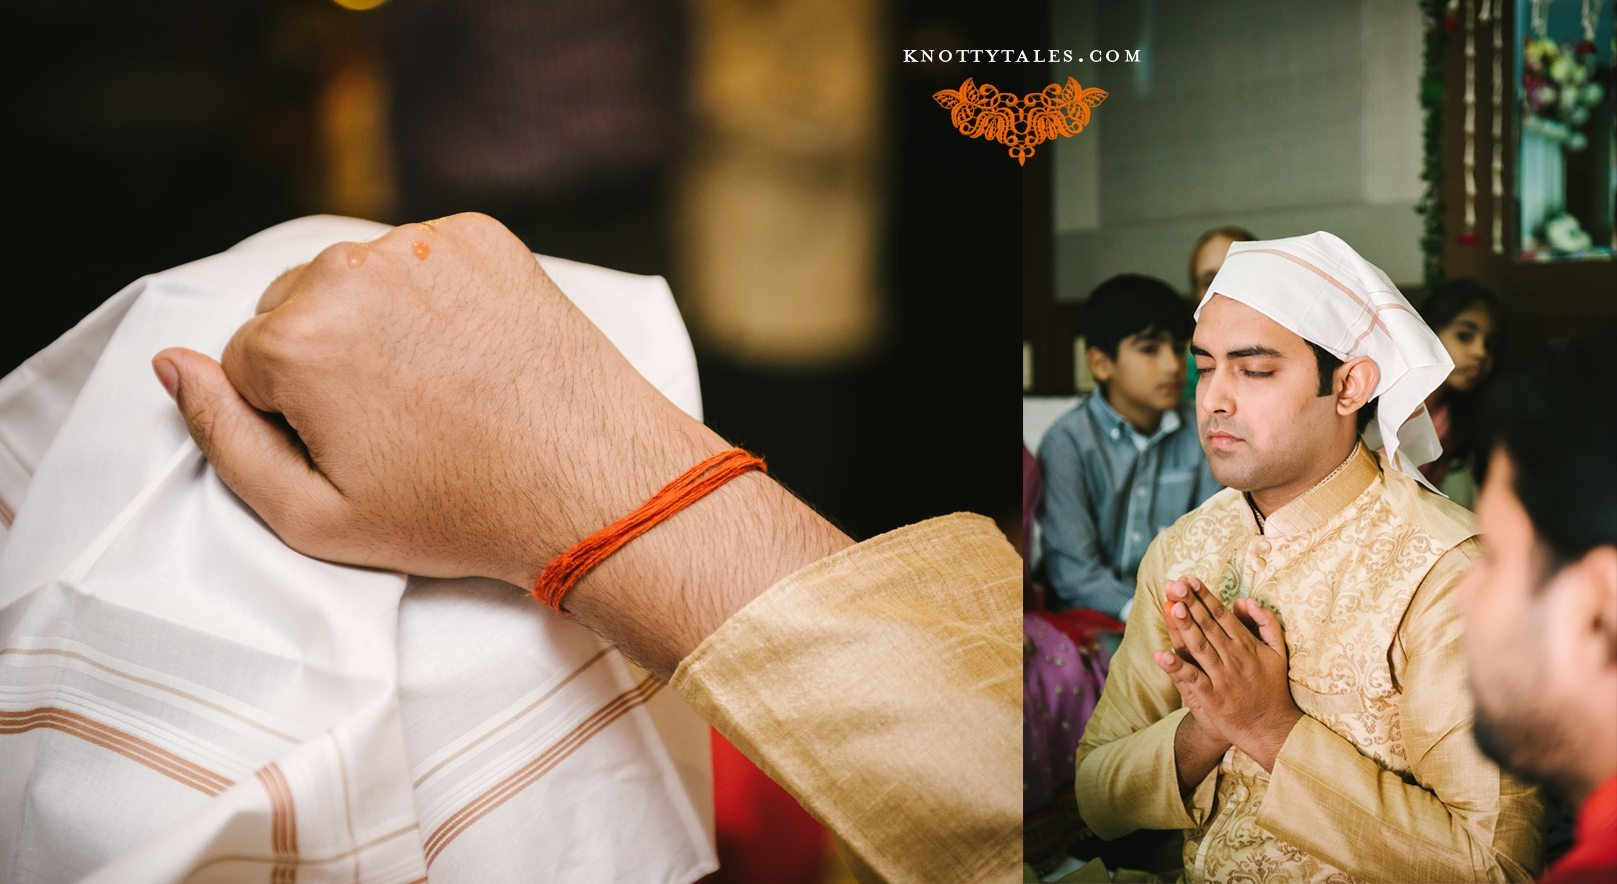 Indian wedding photographer : photography by Naina and Knottytales   Meera & Praval, Engagement Ceremony photo-shoot, New Delhi